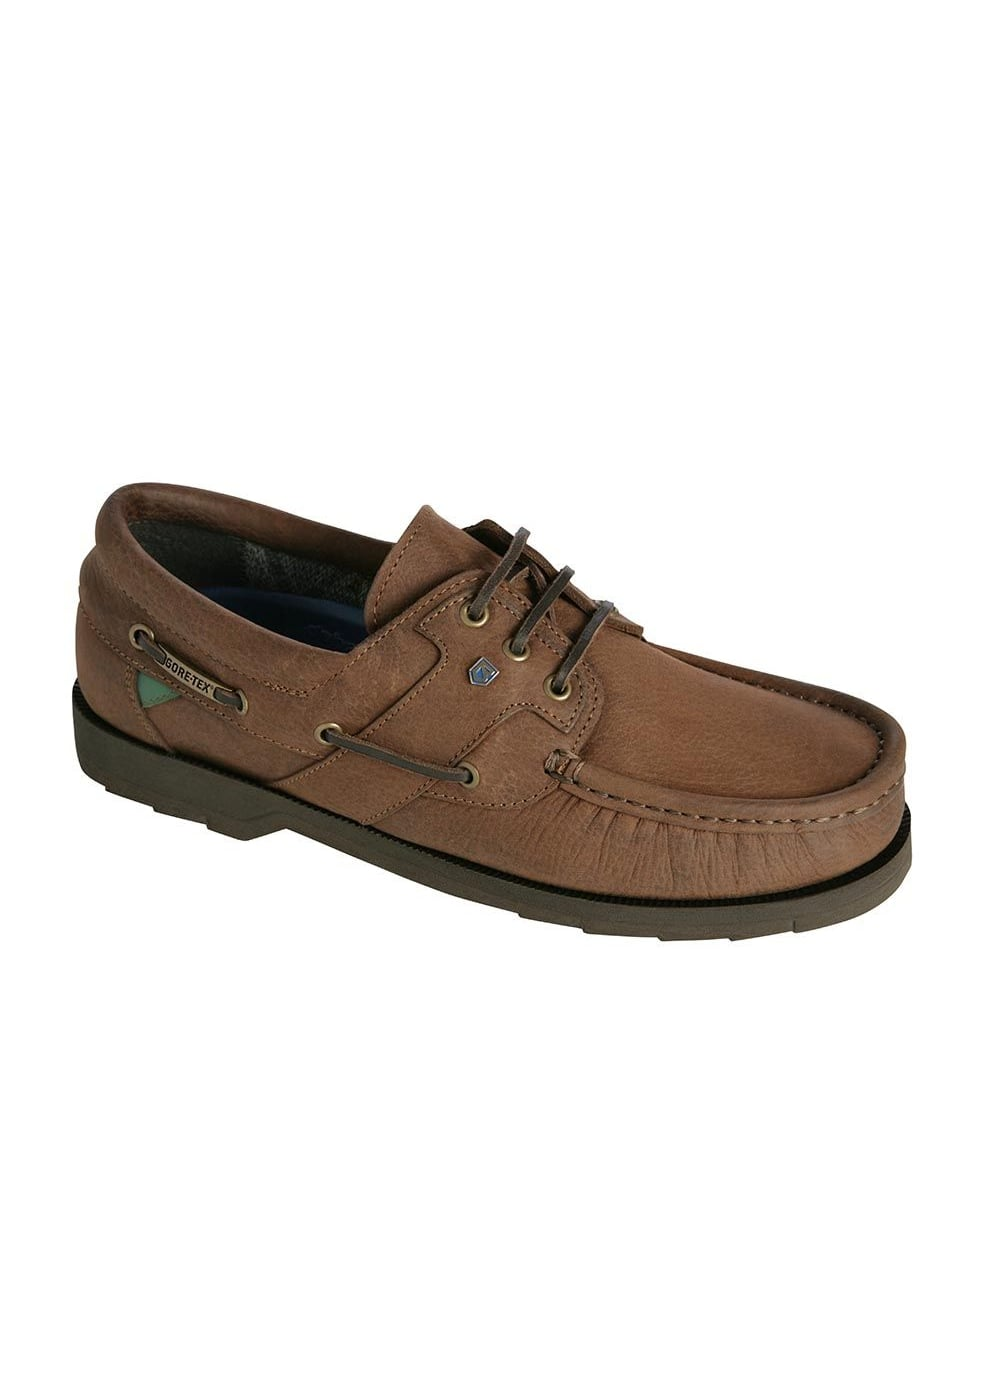 Dubarry Clipper Shoes Large Image